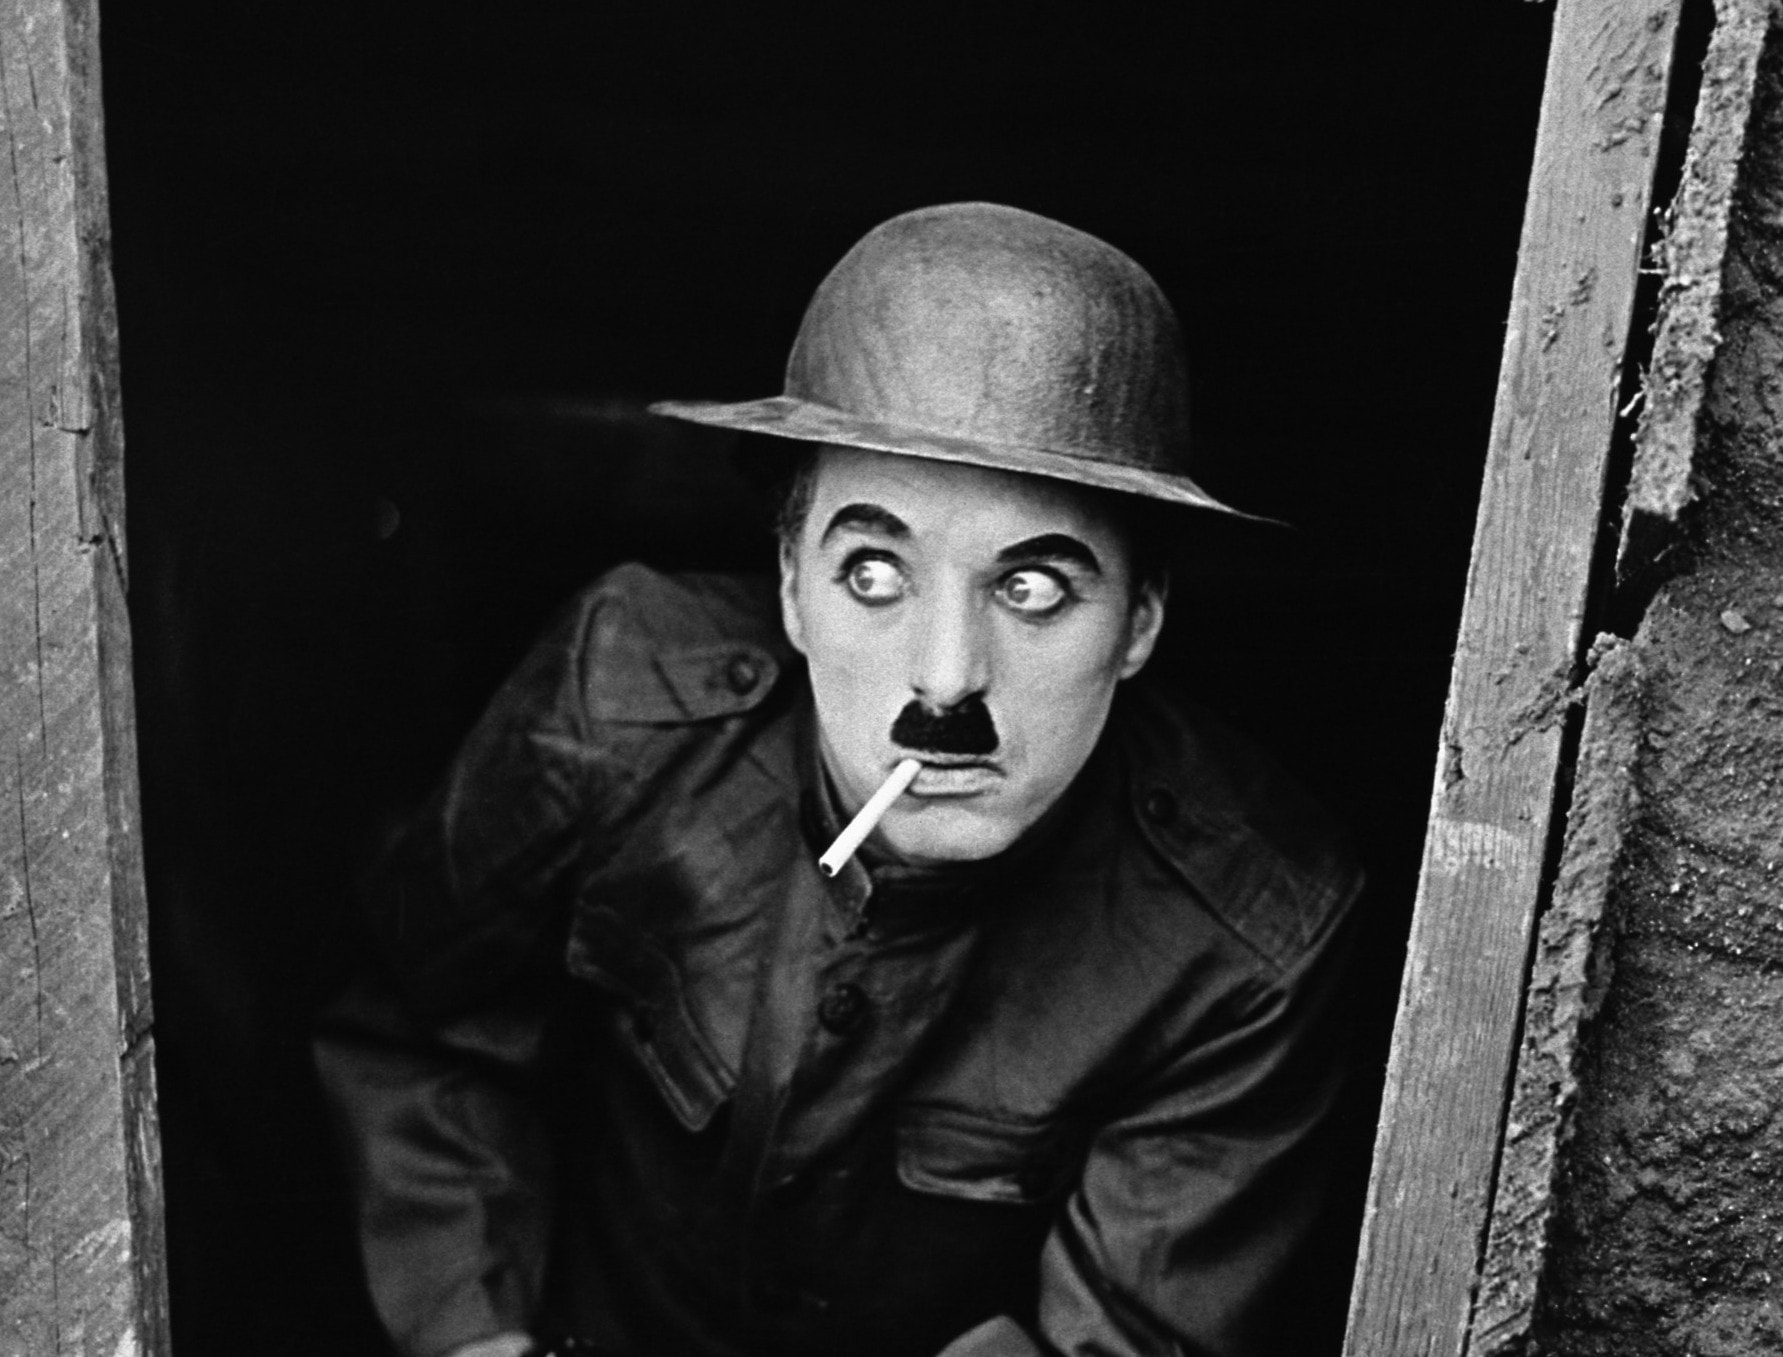 Charles chaplin hd desktop wallpapers 7wallpapers charles chaplin hd pictures charles chaplin full hd wallpapers thecheapjerseys Images